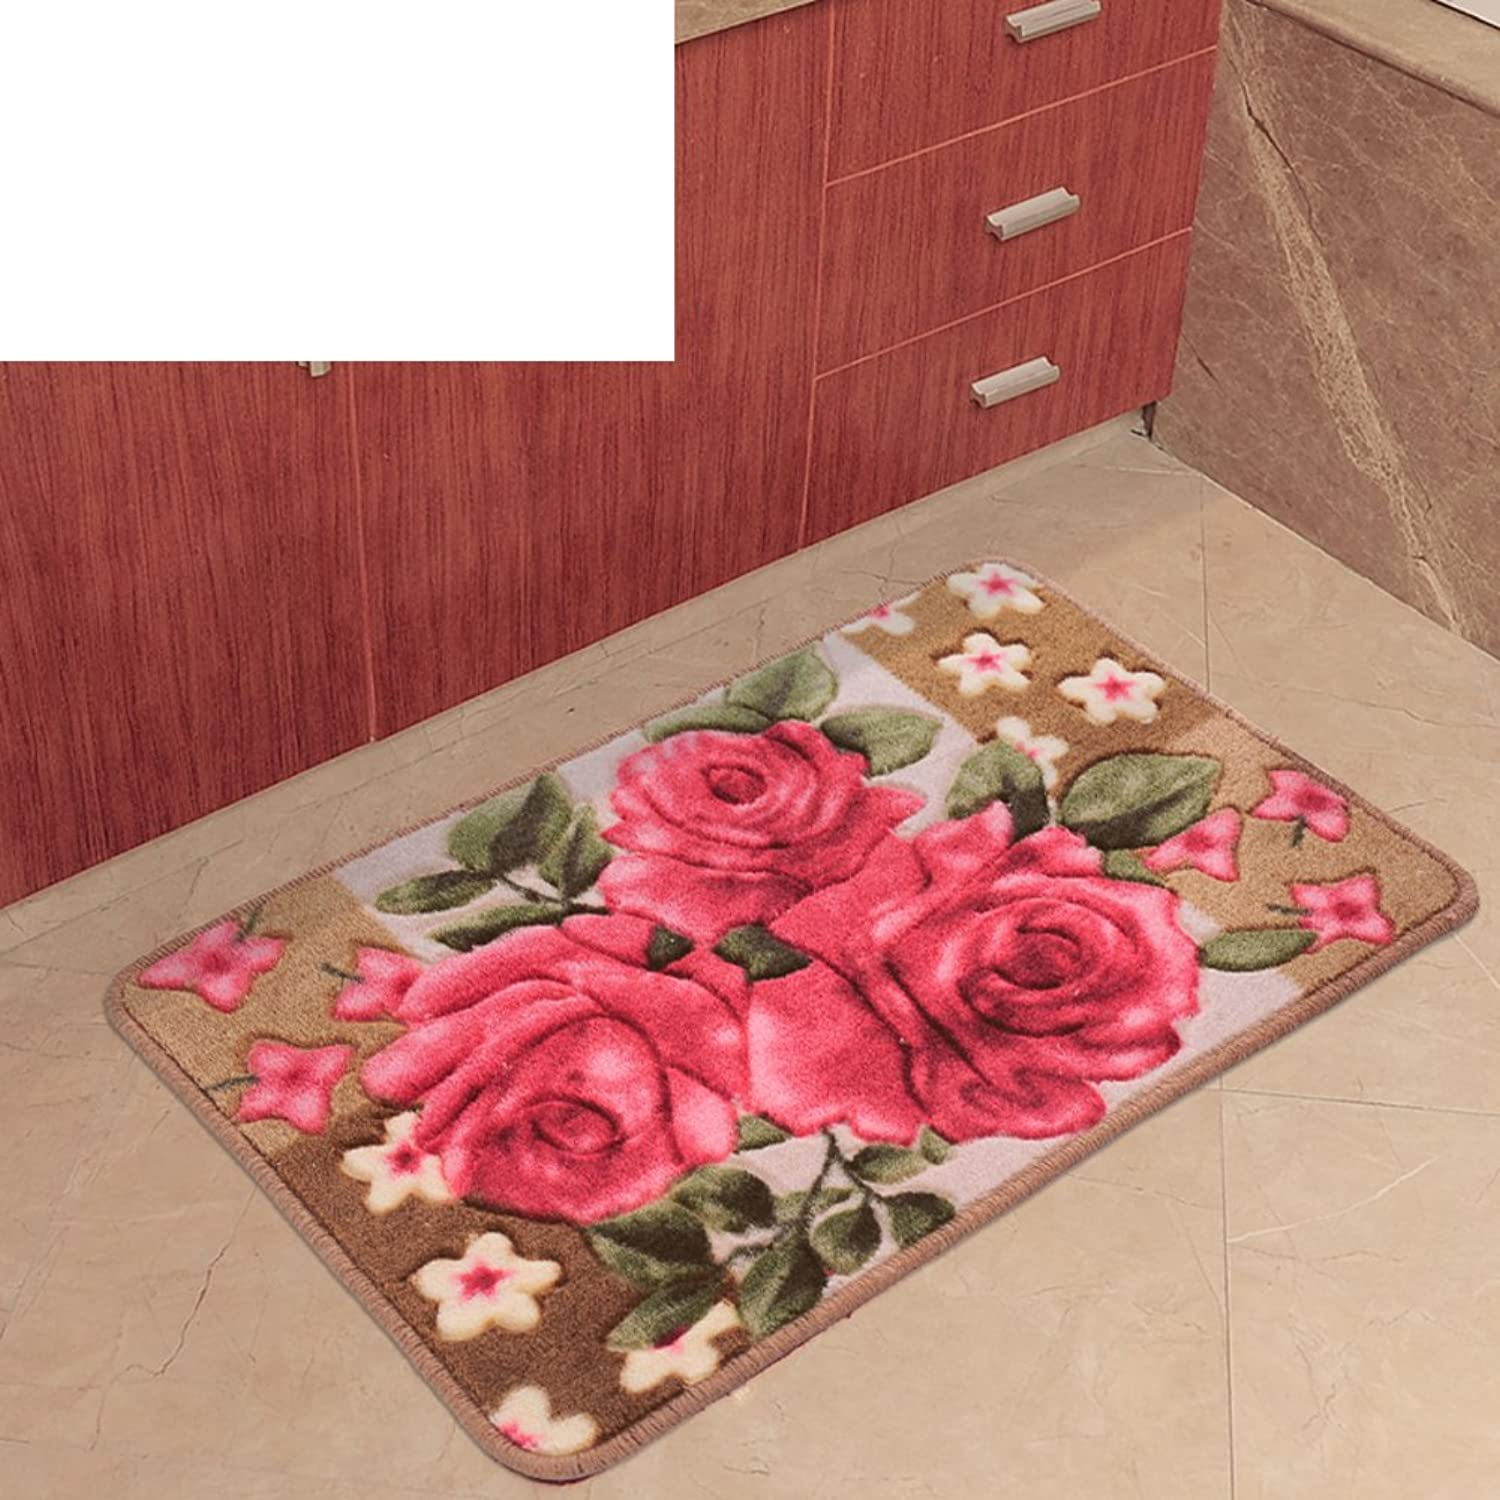 European-Style Floor Mats Doormat Entrance,Bedroom,Bathroom,Non-Slipping Mats Foot Pad Hall,Kitchen,Water-Absorption Door Mat-B 80x150cm(31x59inch)